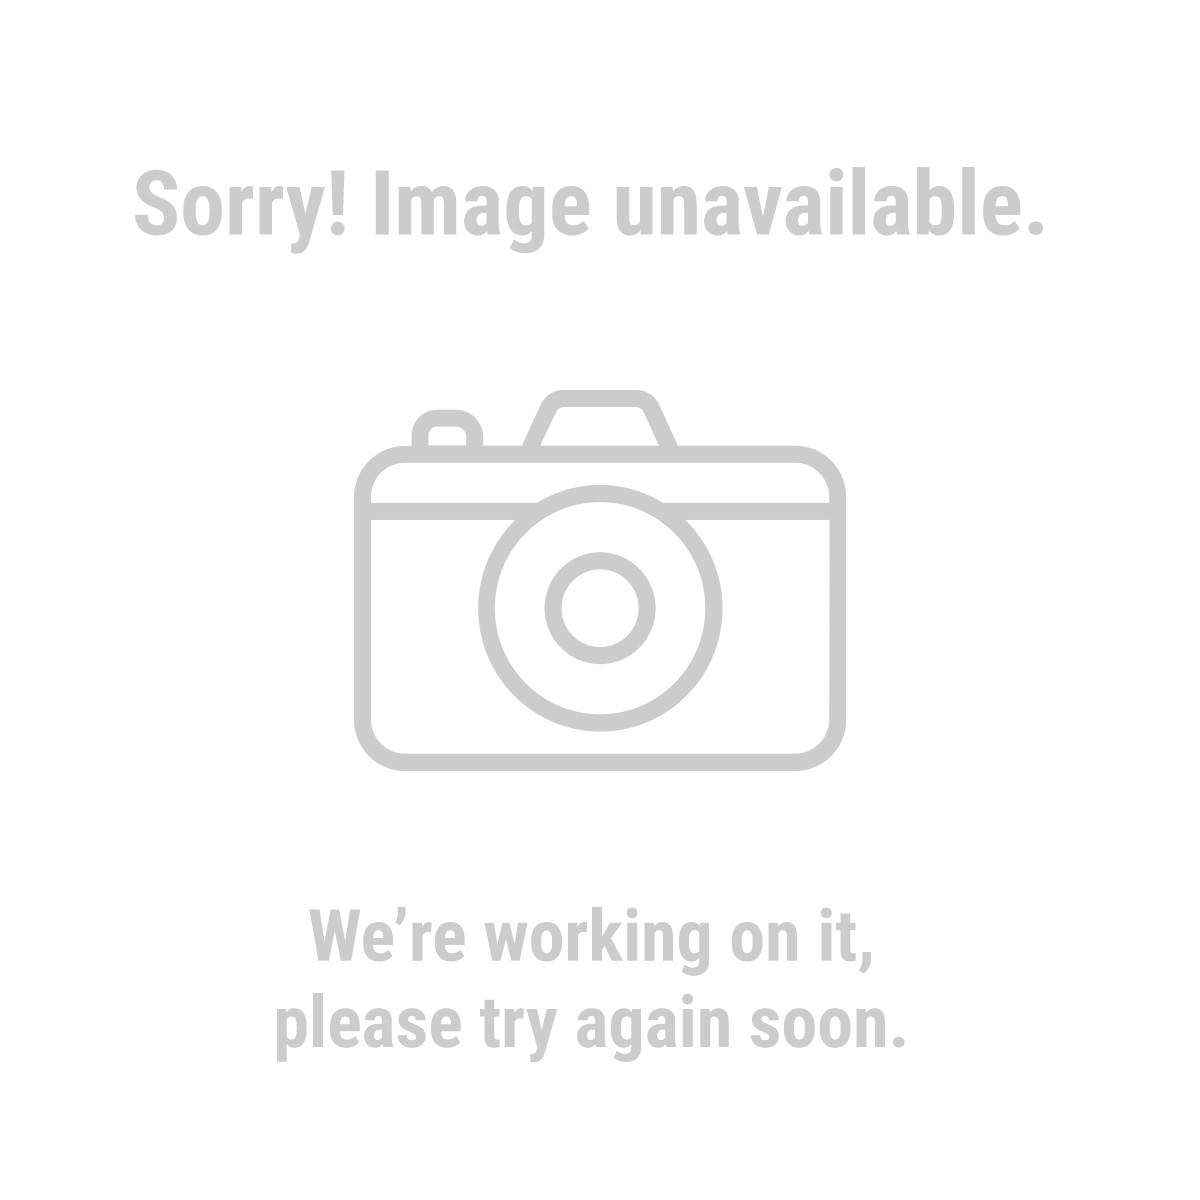 Central Pneumatic 69492 3/4 Oz Deluxe Airbrush Kit